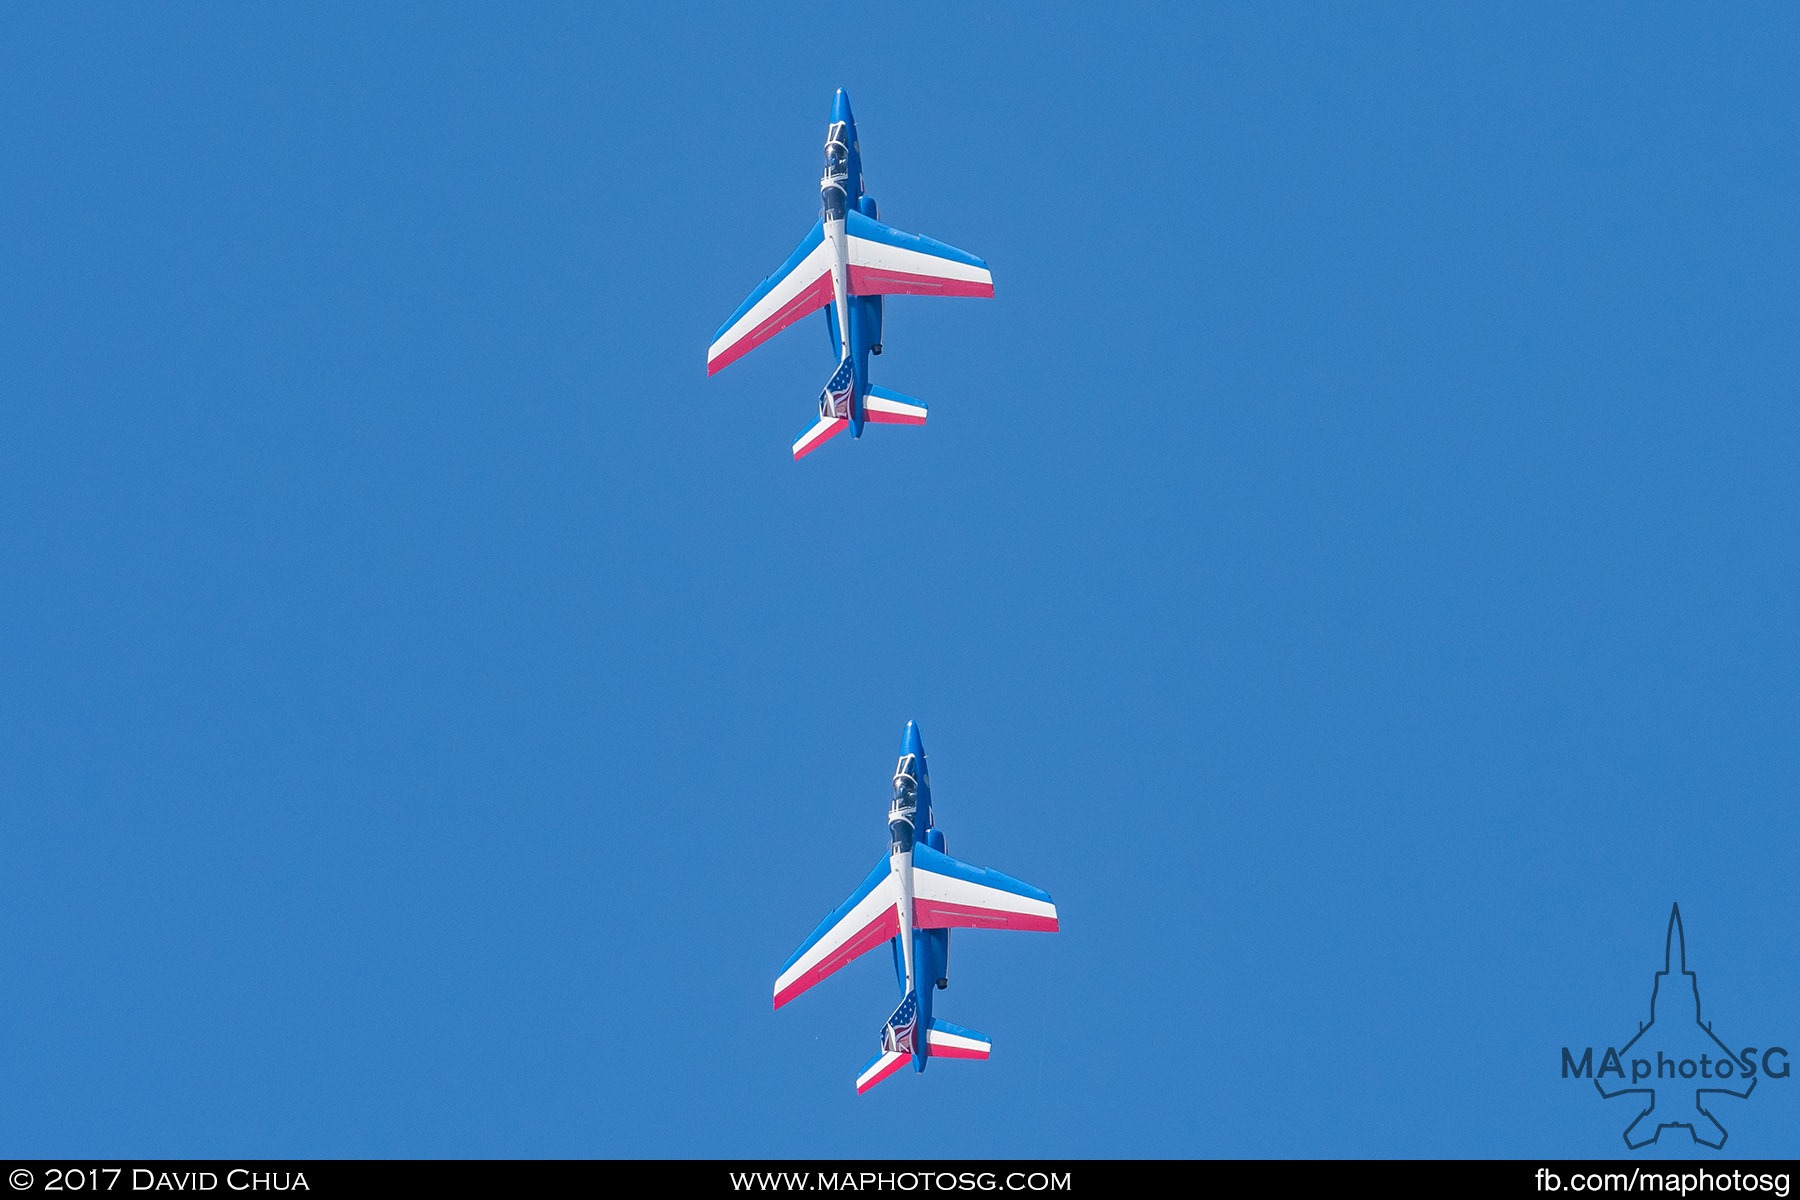 5. The Patrouille de France Aerobatic Display Team of the French Air Force wowed visitors on the opening day and the last three public days of the show with their precision flying